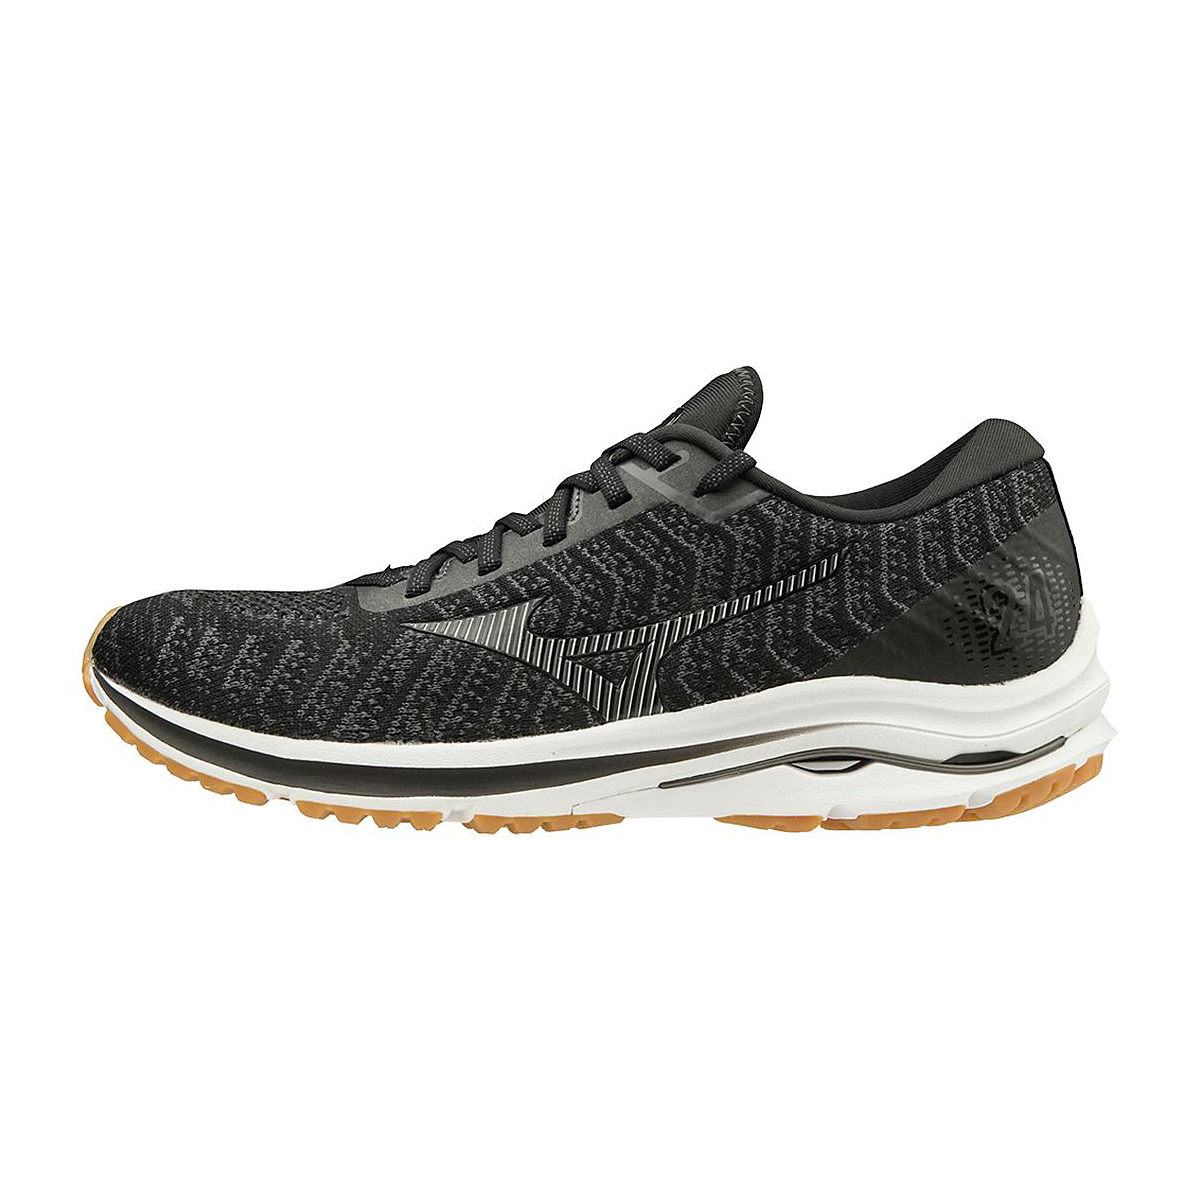 Men's Mizuno Wave Rider 24 Waveknit Running Shoe - Color: Black/Dark Shadow  - Size: 8 - Width: Regular, Black/Dark Shadow, large, image 2